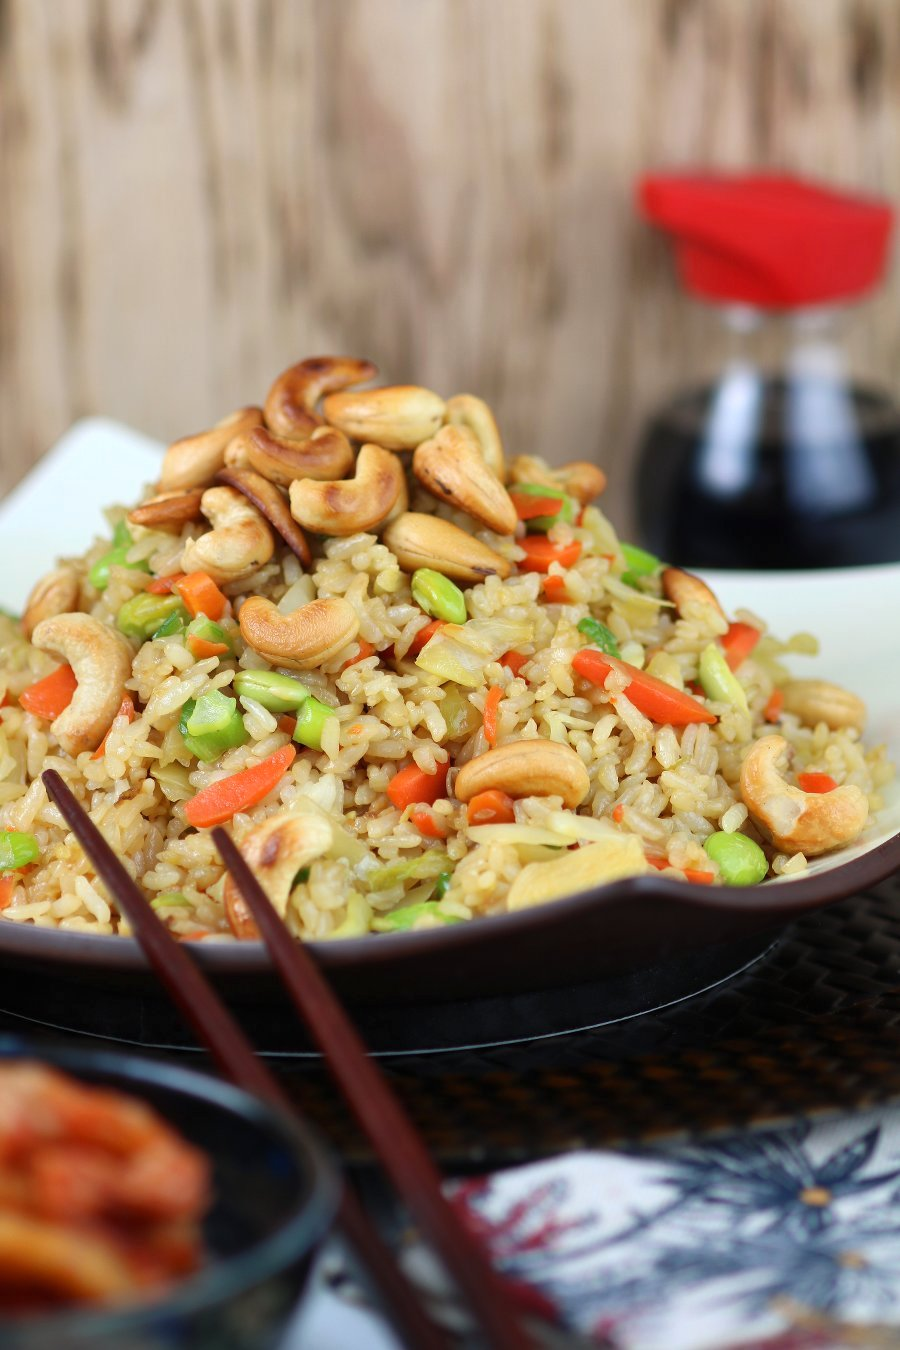 An under 20-minute recipe for Quick Vegetable Fried Rice that uses basic pantry ingredients and veggies you probably have hiding in your fridge!